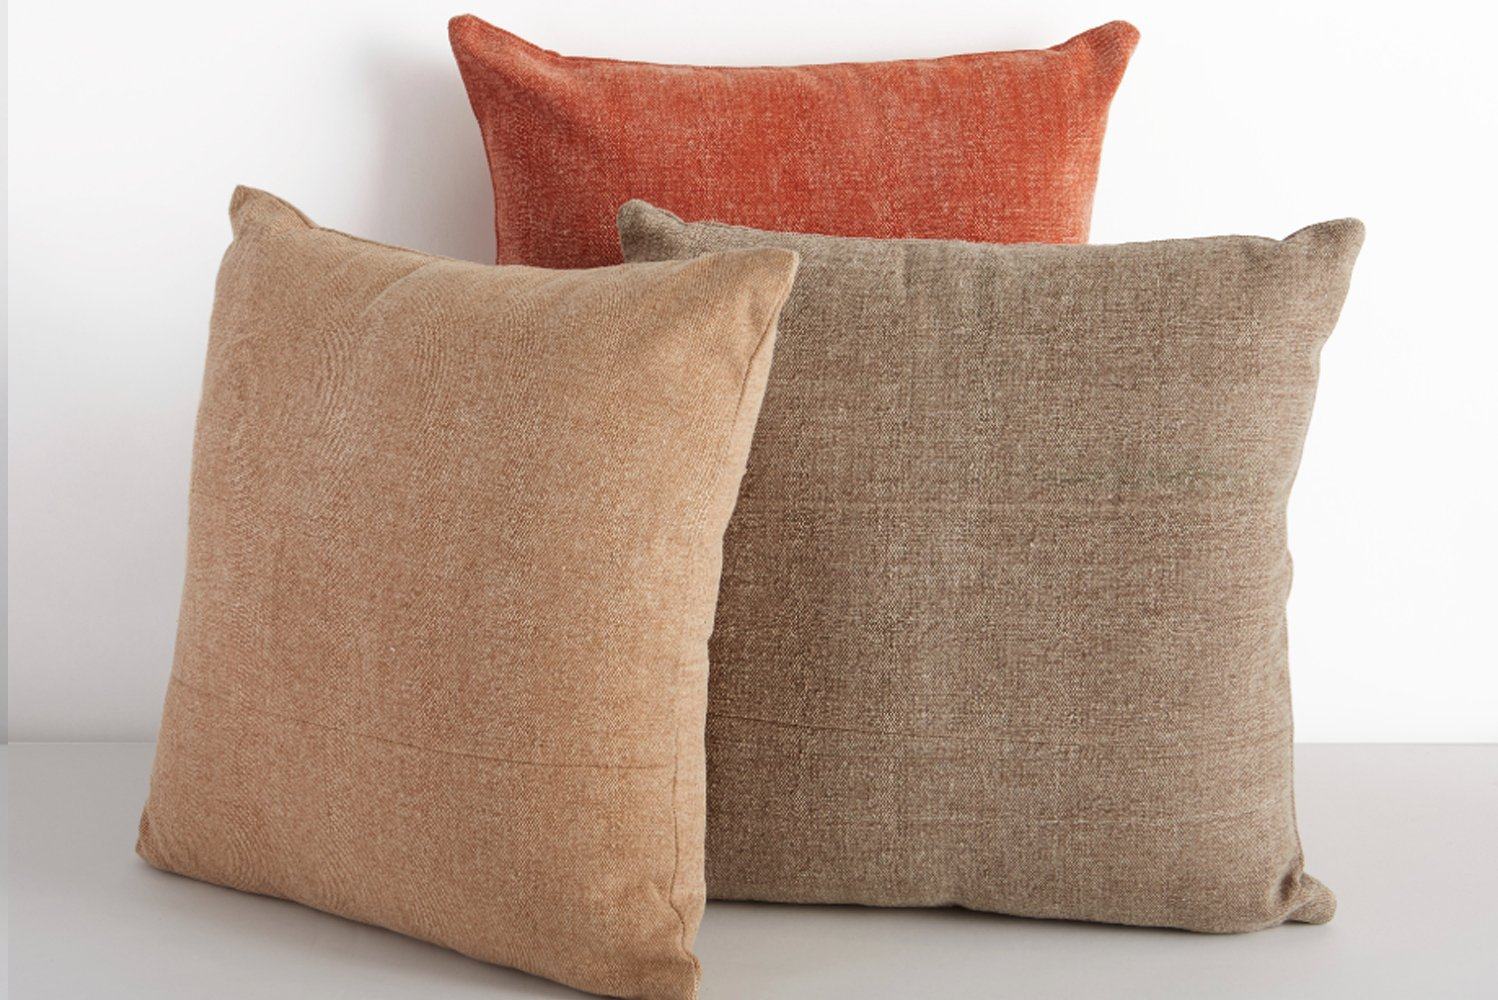 Made from classic cotton, the Hatch pillow comes in an assortment of neutral shades—ideal for any interior design palette.